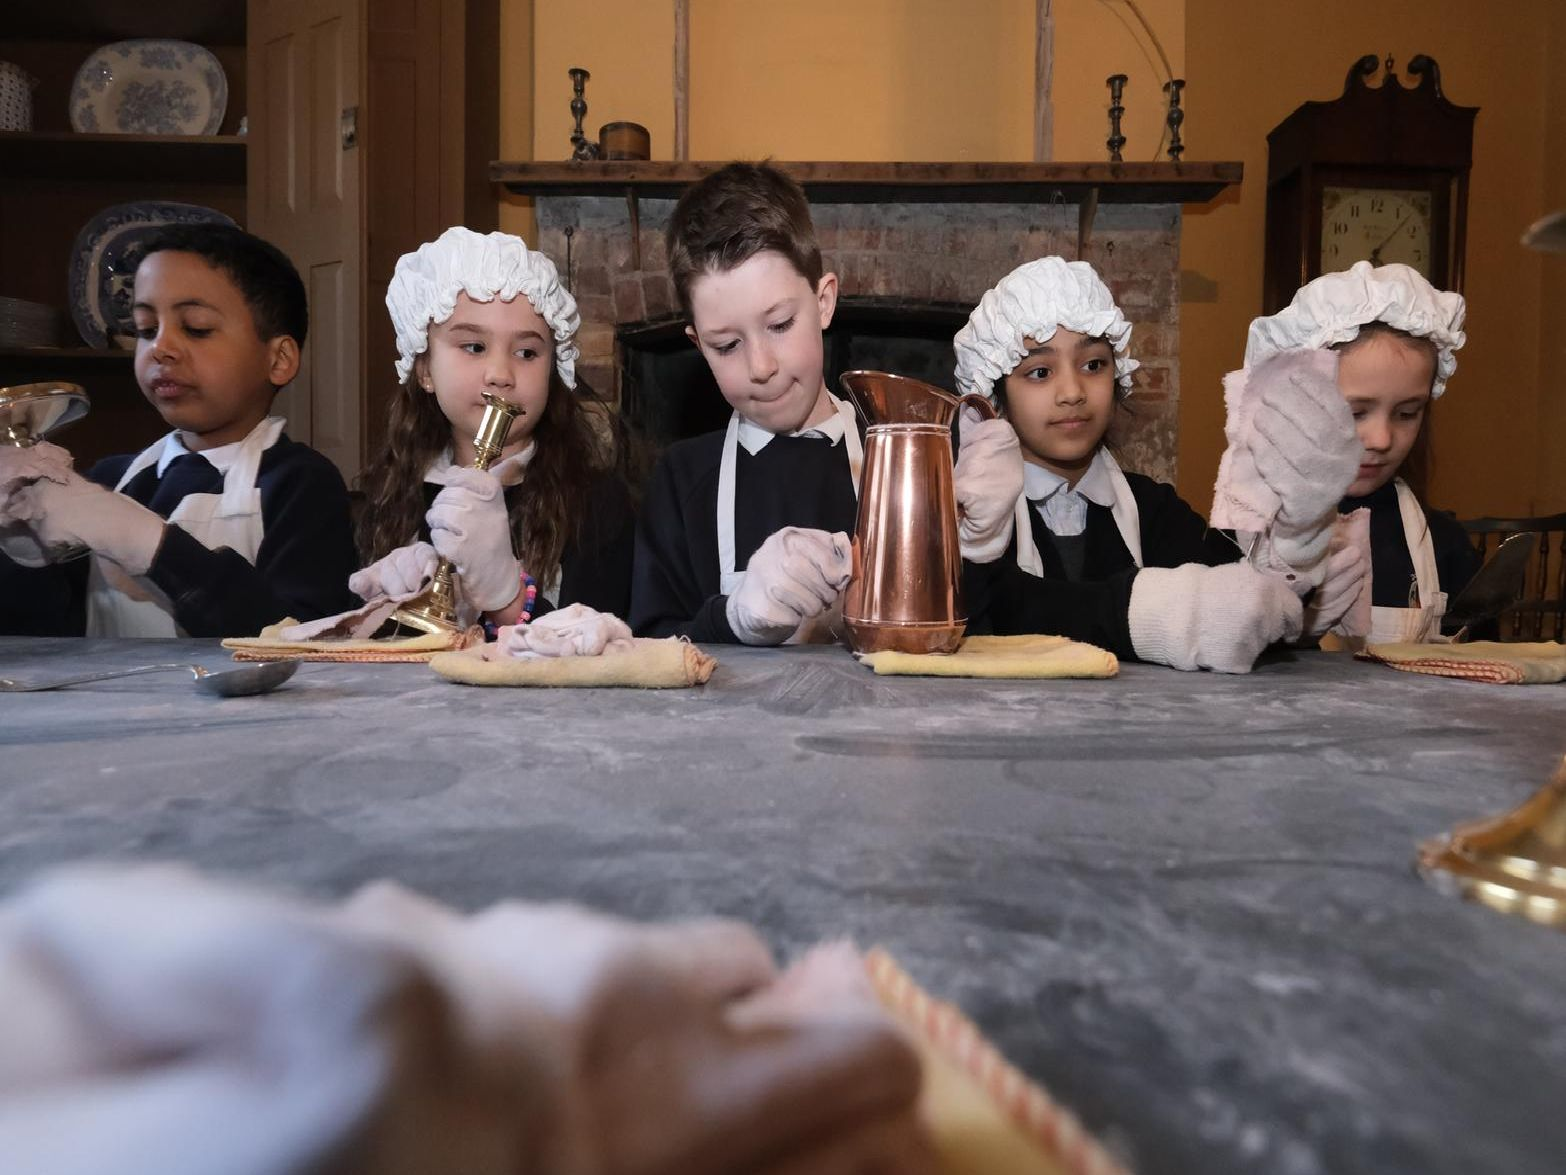 Dallas Road Primary School pupils dress in period clothing for a tour of the Judge's Lodgings Museum